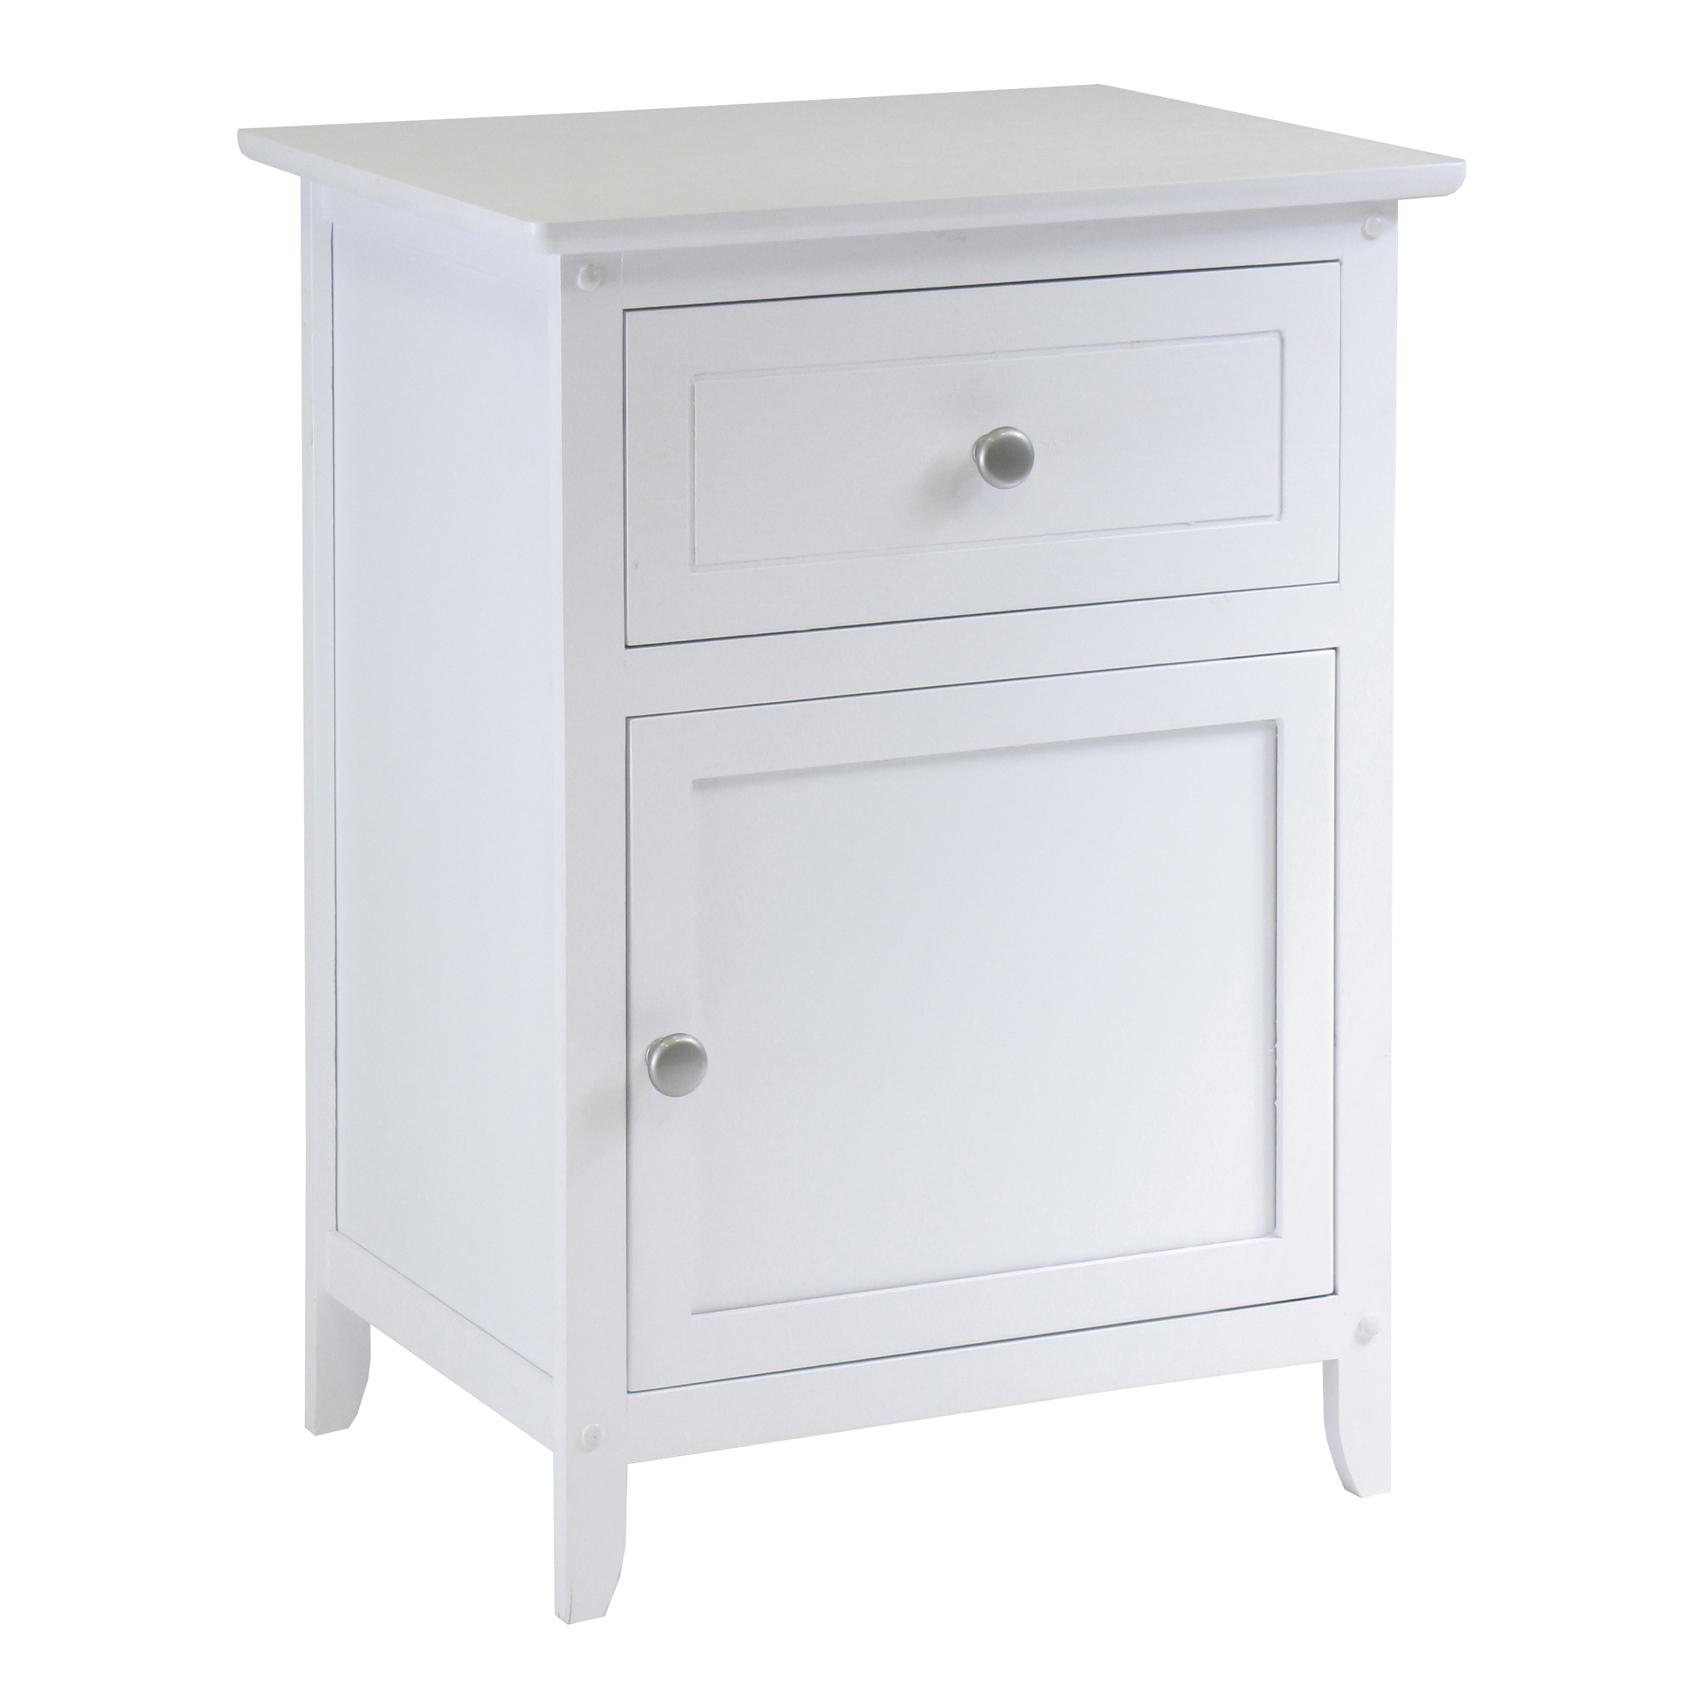 winsome wood night stand accent table with outdoor tables drawers and doors basket large marble dining ceramic side target twin sleeper sofa fall linens antique round hall small